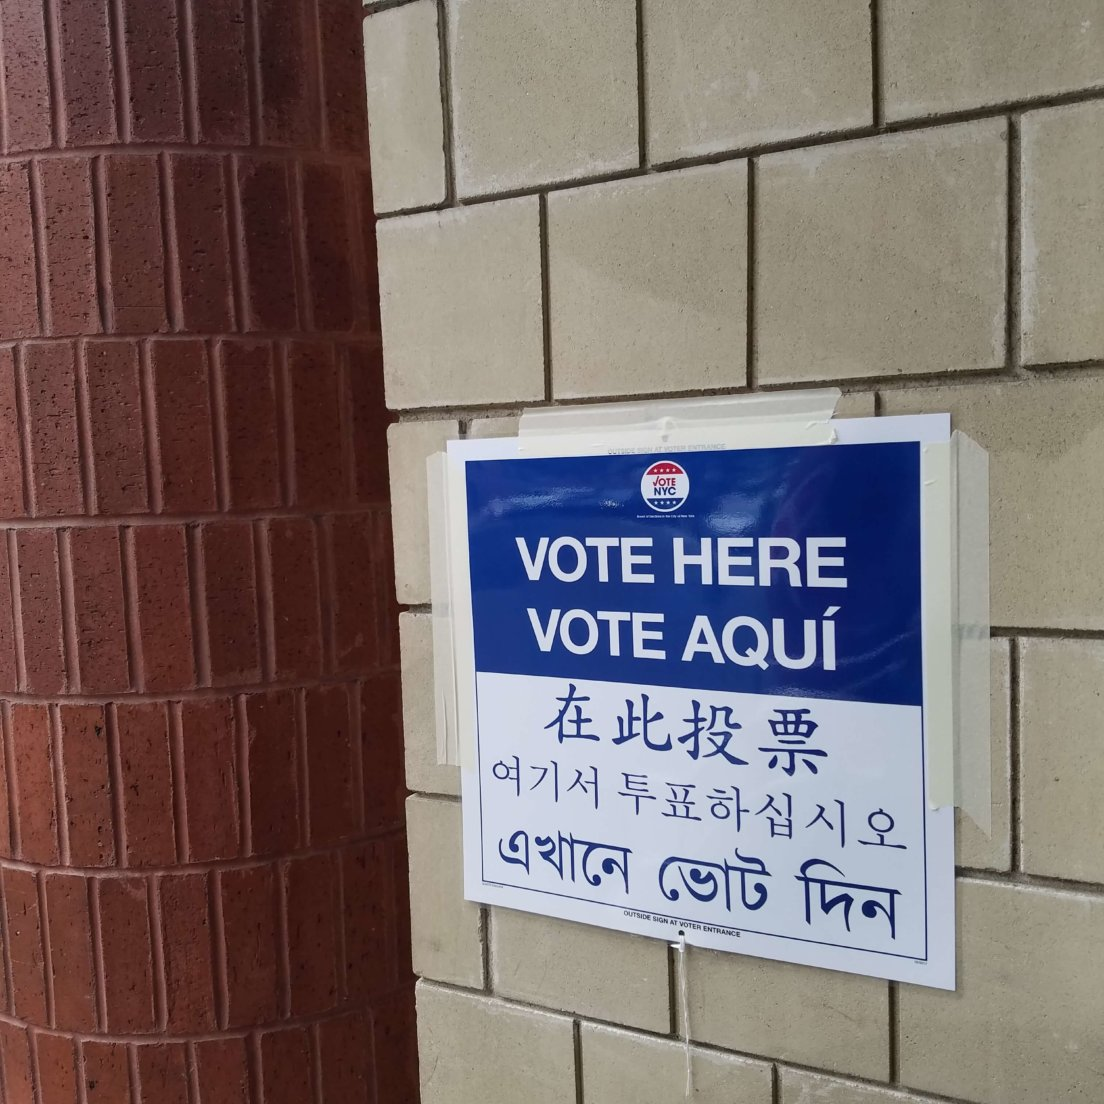 Queens Votes in DA Primary: At one Astoria polling place, progressives make their choices clear